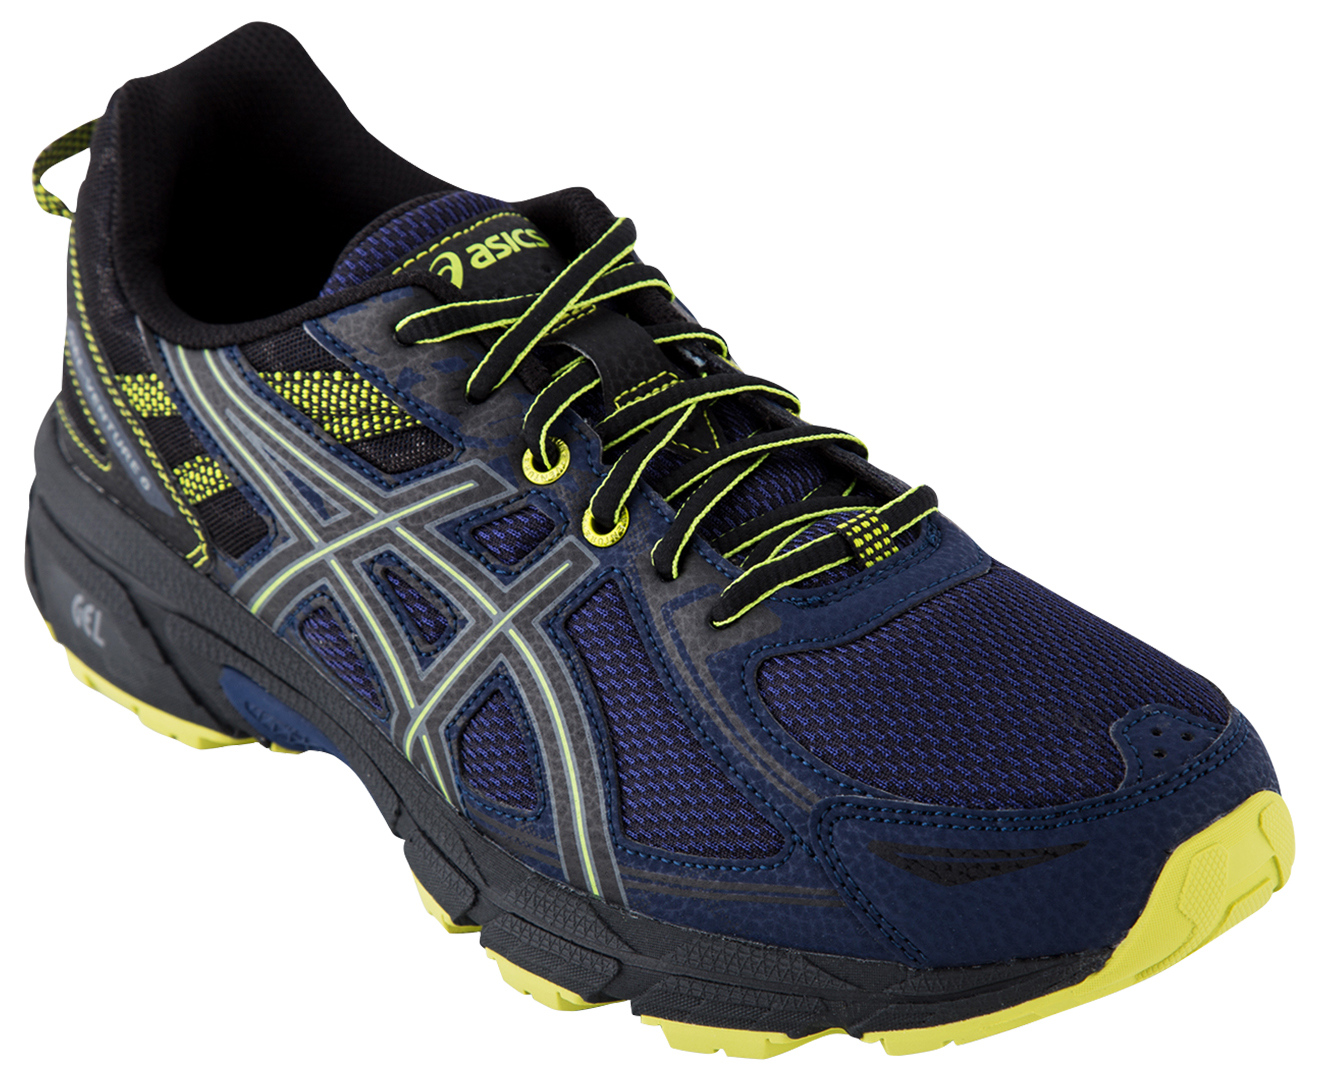 Asics Men S Gel Venture 6 Shoe Indigo Blue Black Energy